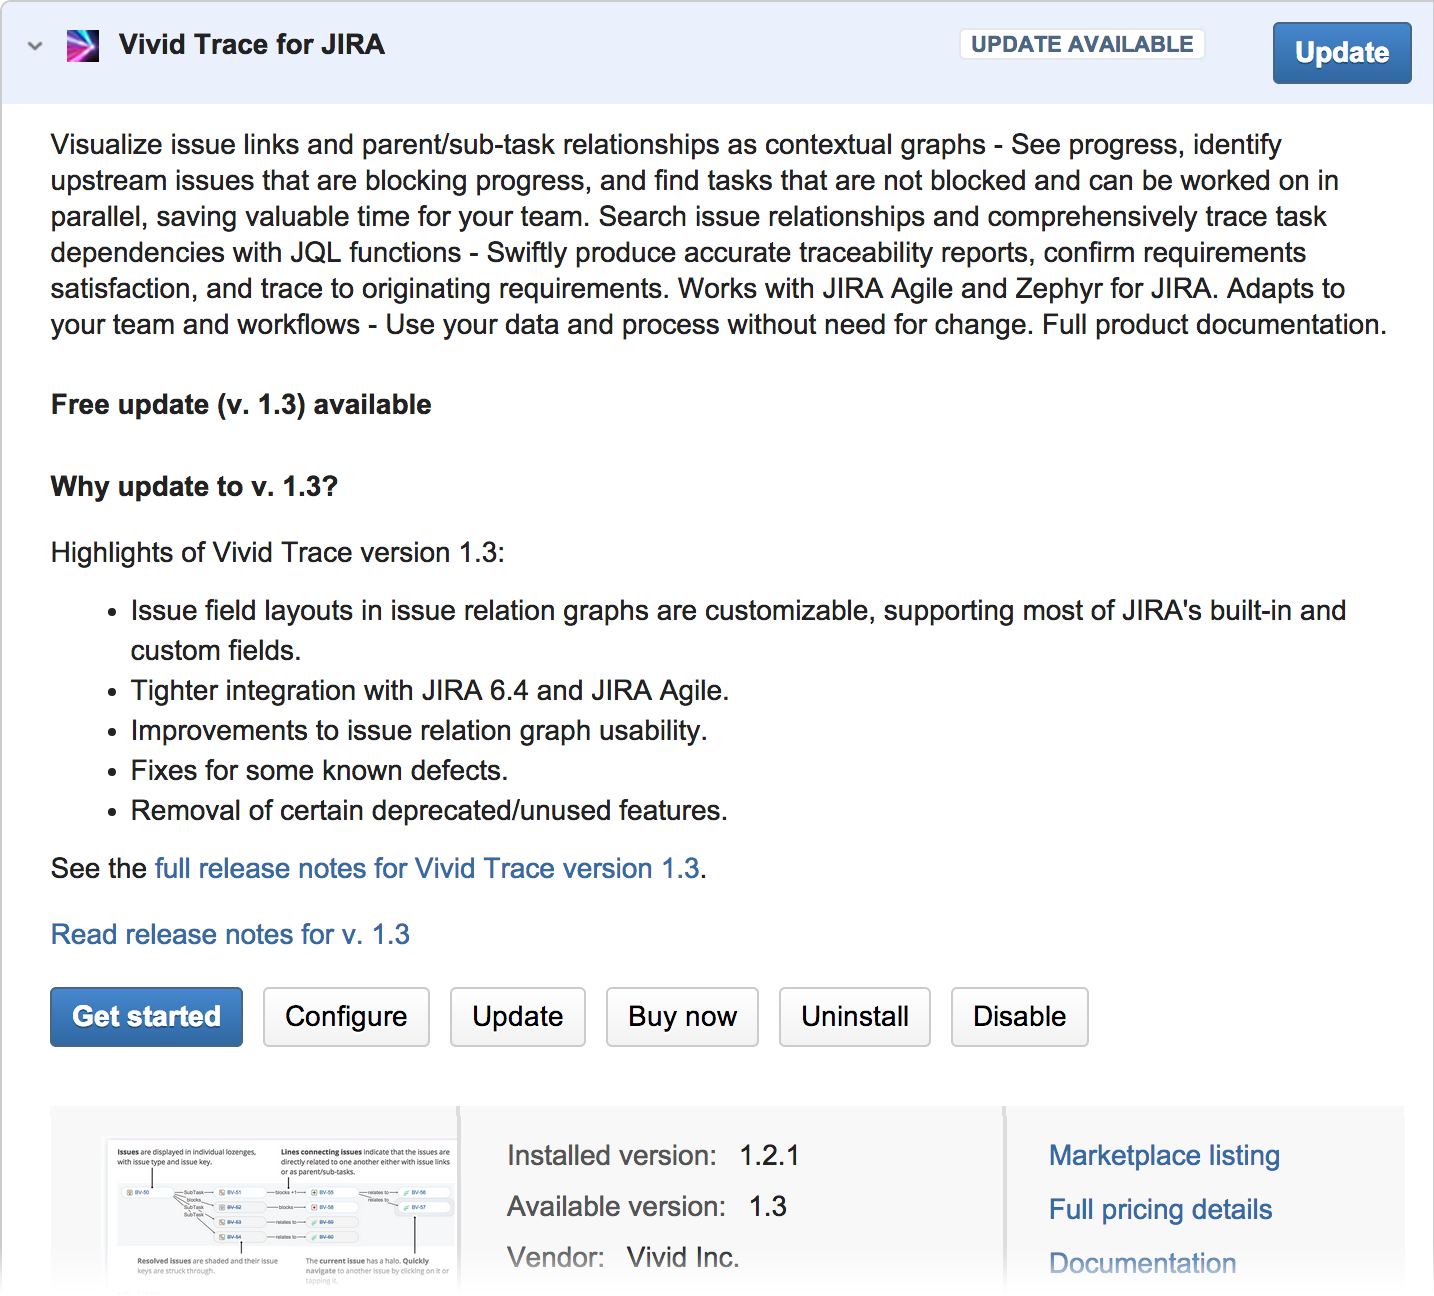 Figure: Managing the Vivid Trace add-on in JIRA